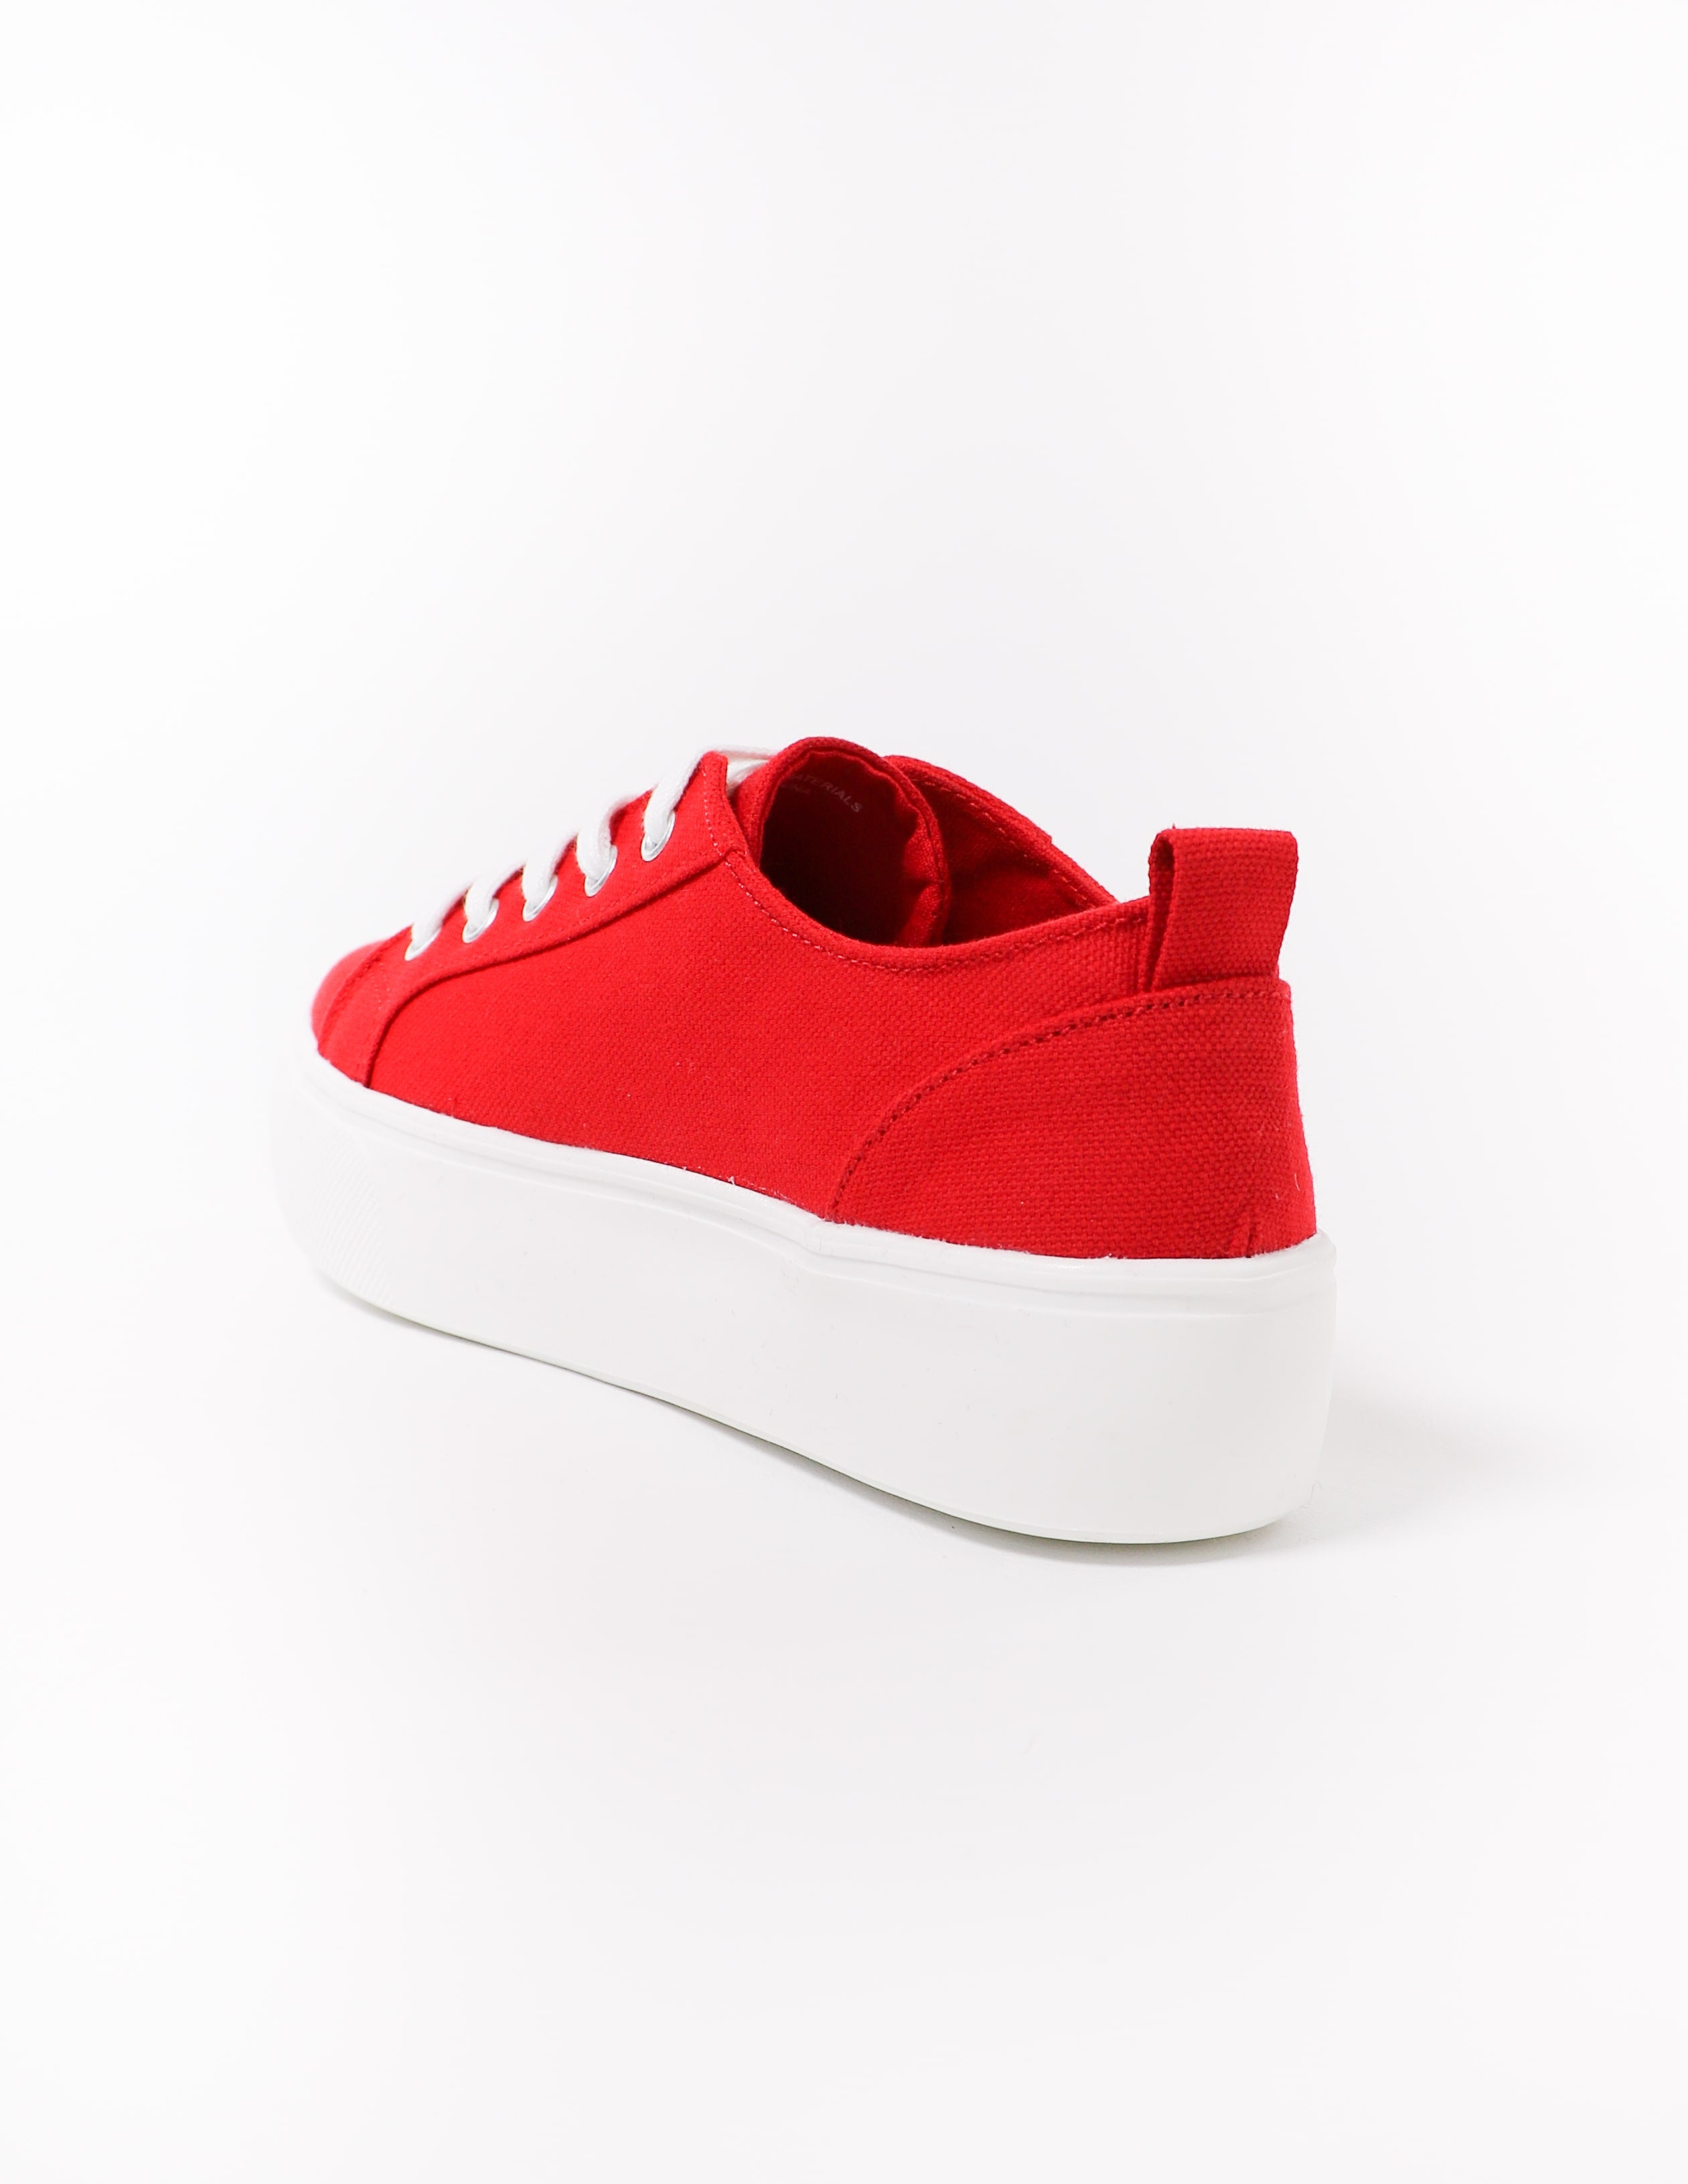 back of the red lace take it slow sneaker on white background